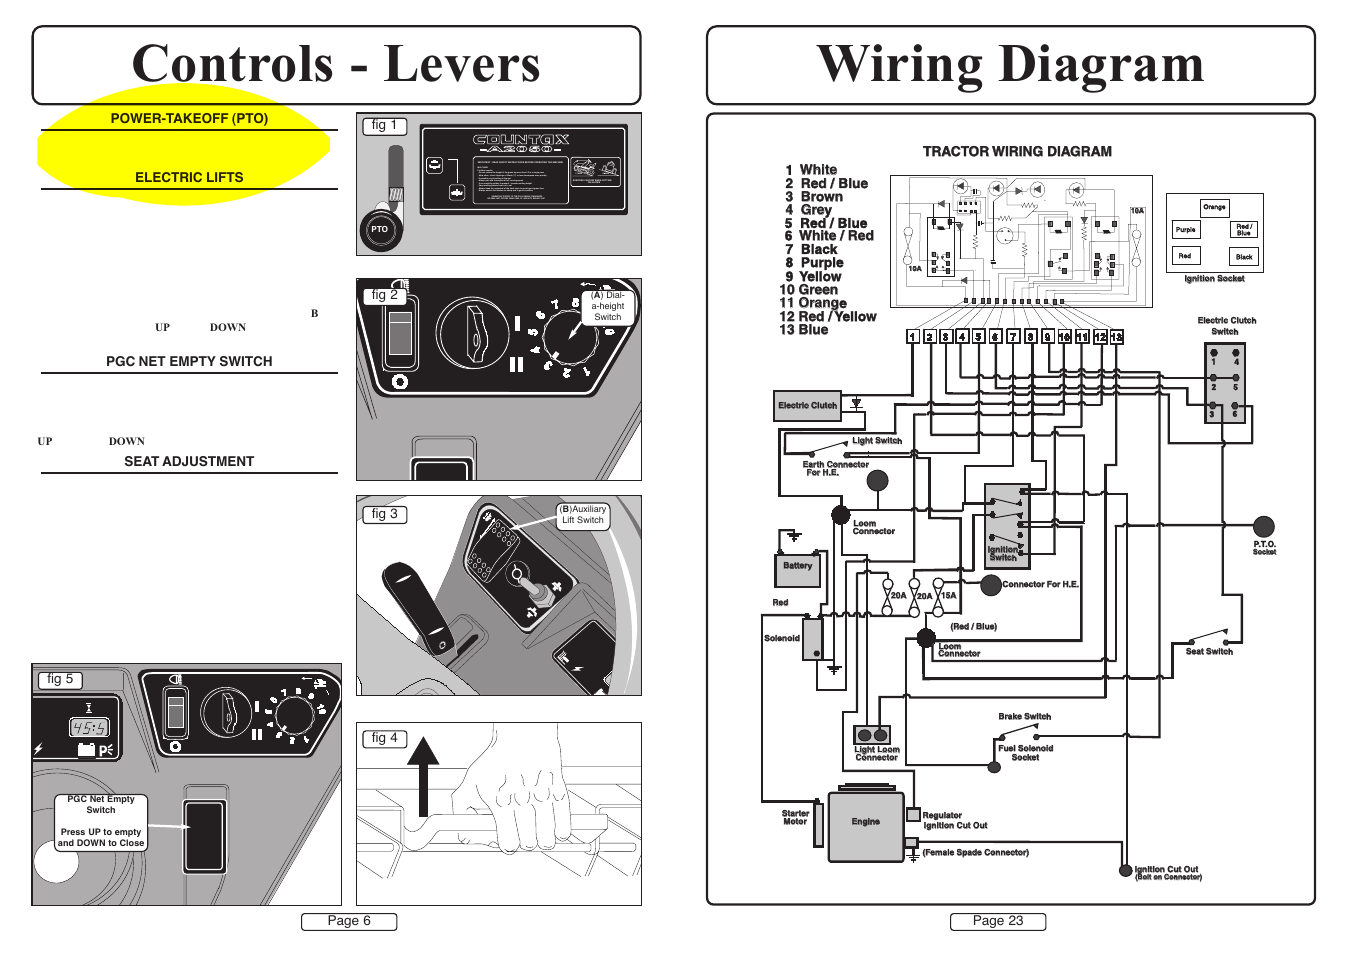 Wiring       diagram       controls     levers   Countax A50 User Manual